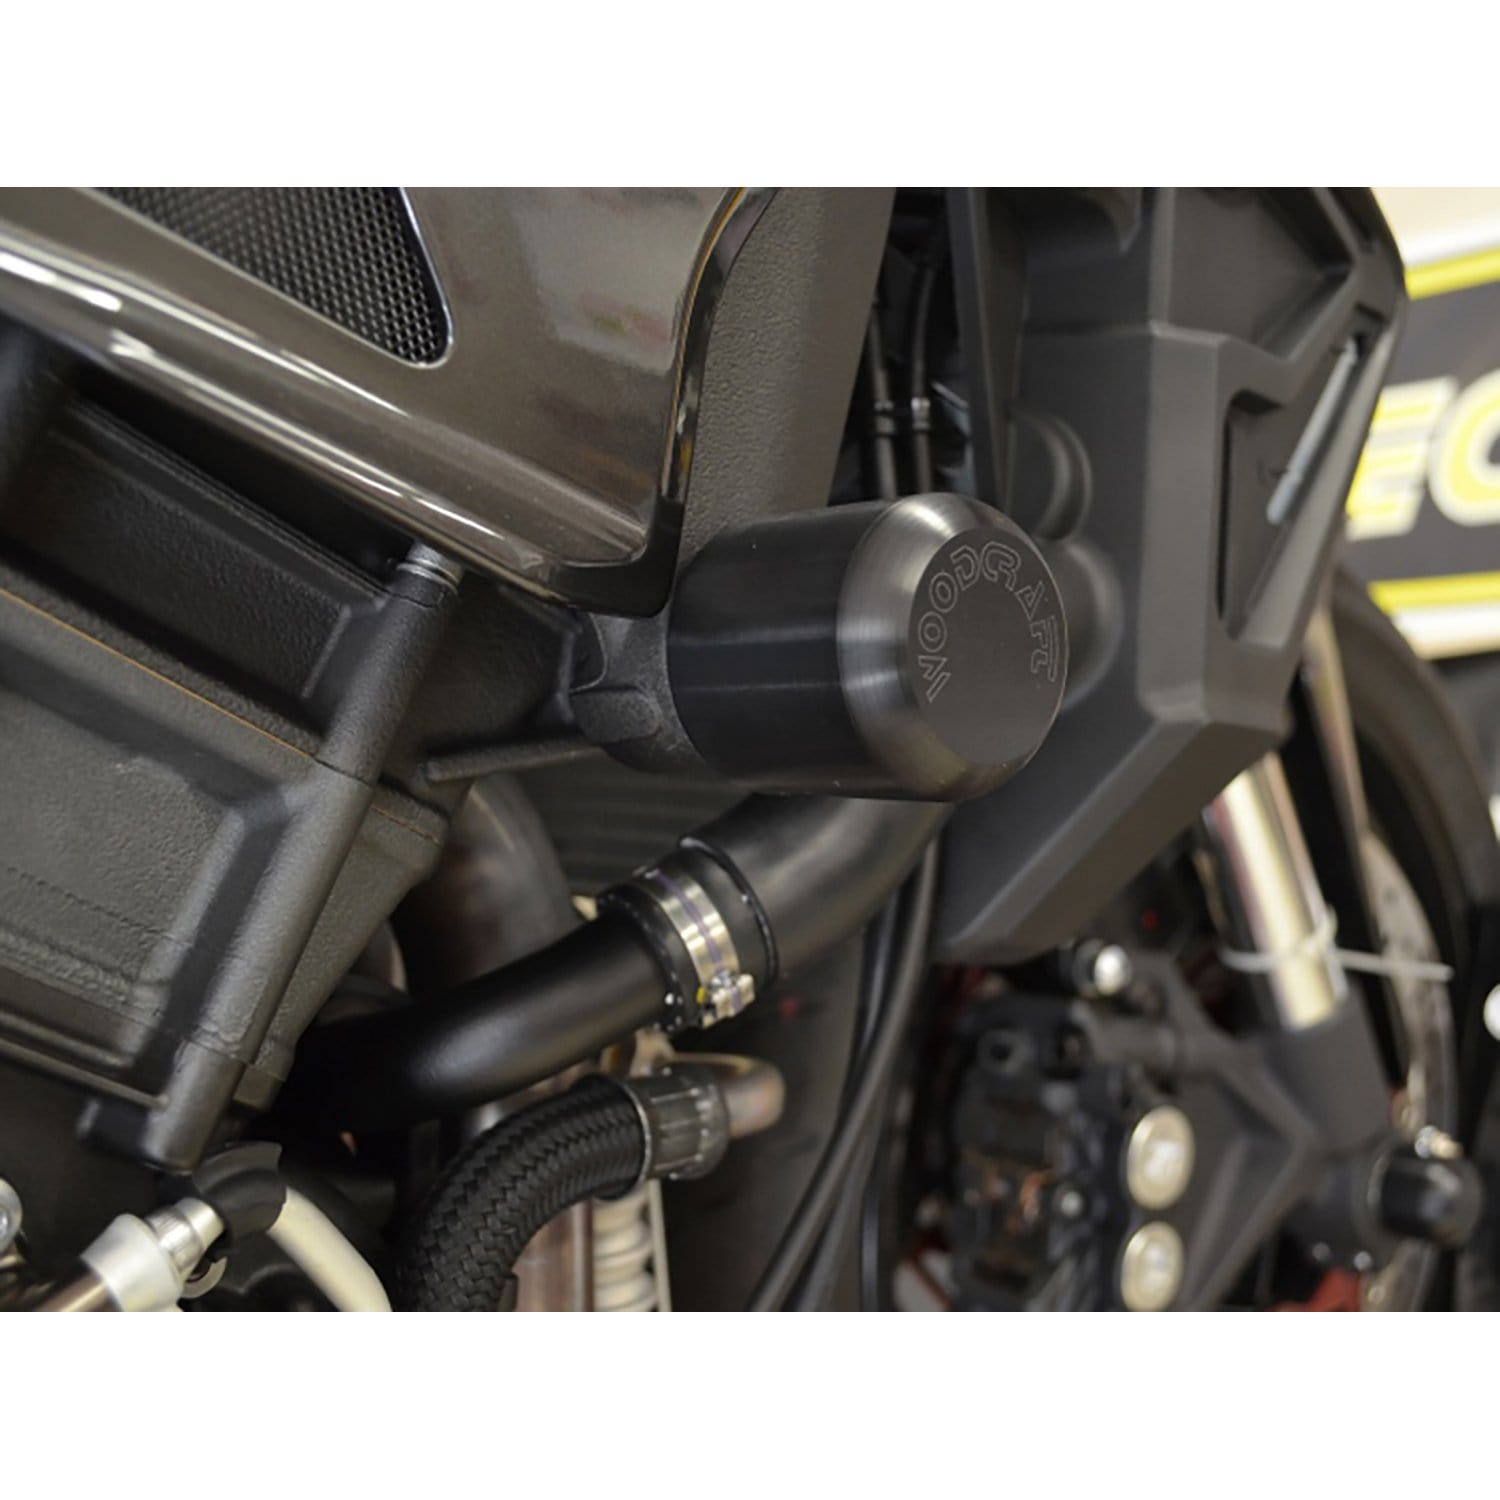 50-0416 Yamaha FZ10 MT10 2017-20 Frame Slider Kit